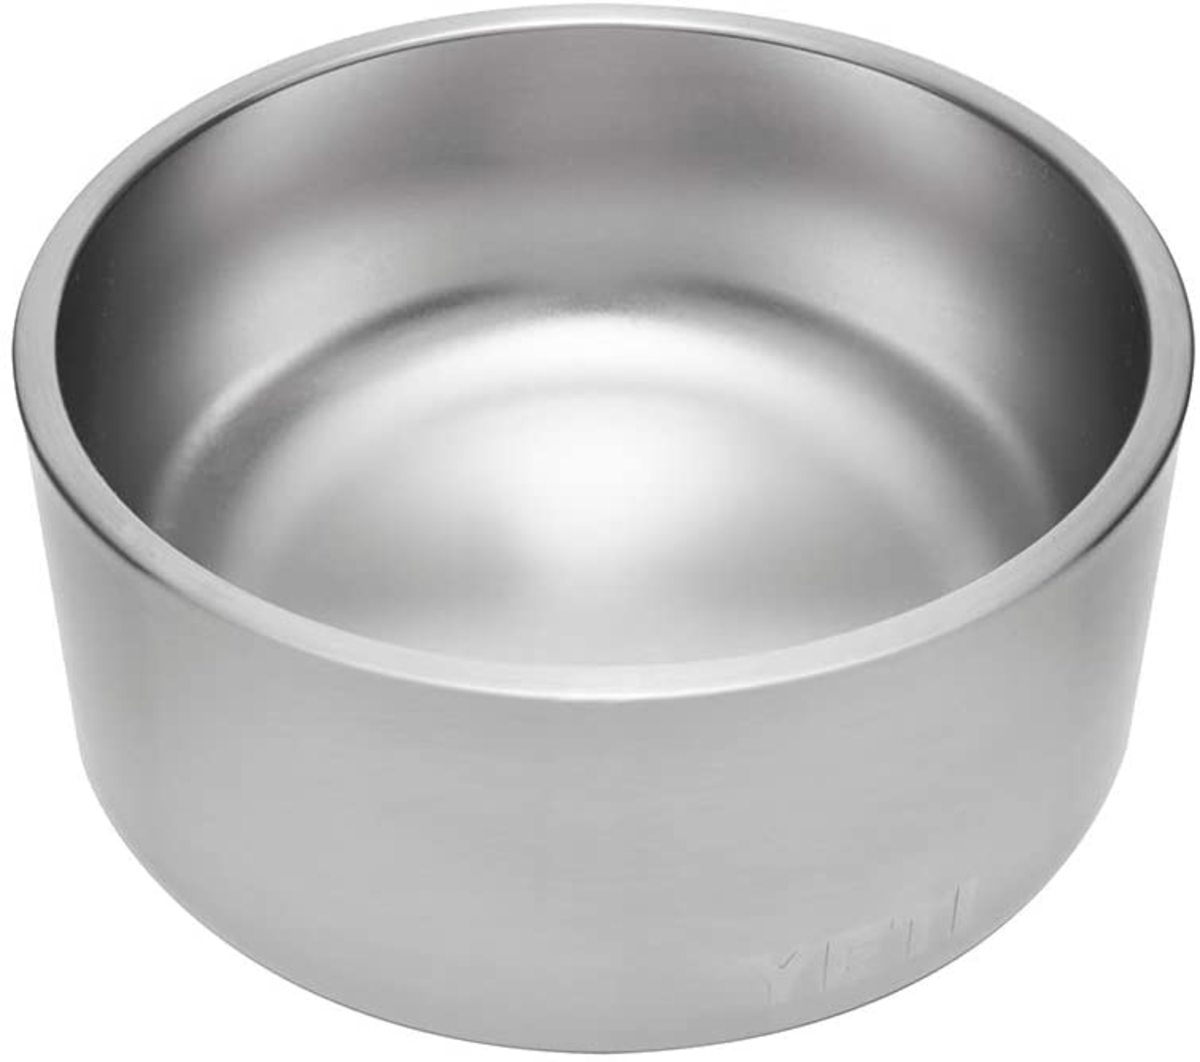 the-best-drinking-bowls-for-german-shepherds